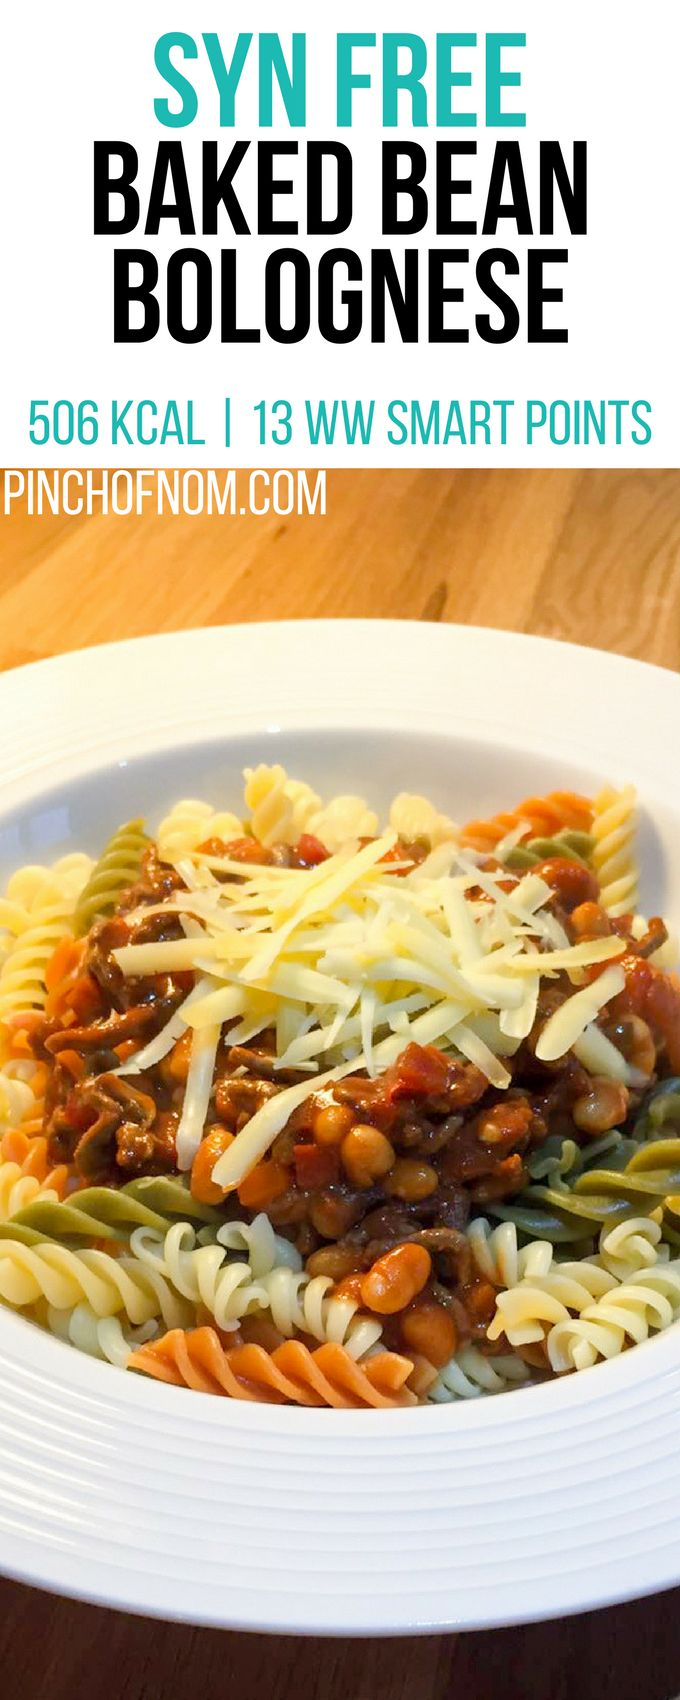 Syn Free Baked Bean Bolognese   Pinch Of Nom Slimming World Recipes 506 kcal   Syn Free   13 Weight Watchers Smart Points